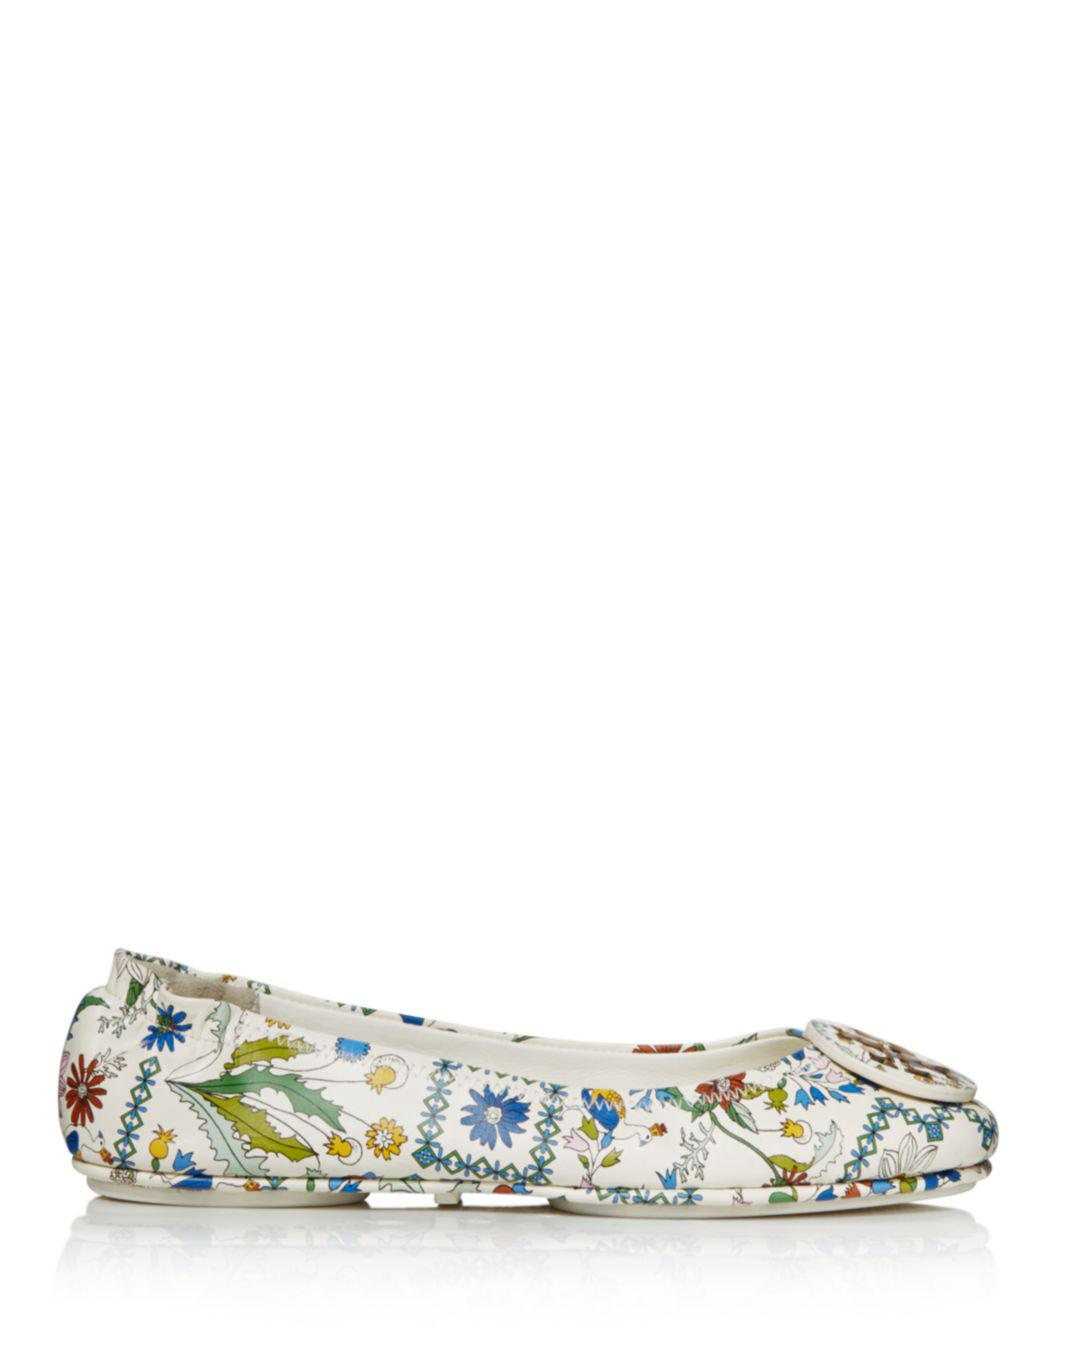 8cfa941b6e3164 Lyst - Tory Burch Minnie Ivory Meadow Folly Travel Ballet Flats in White -  Save 33%